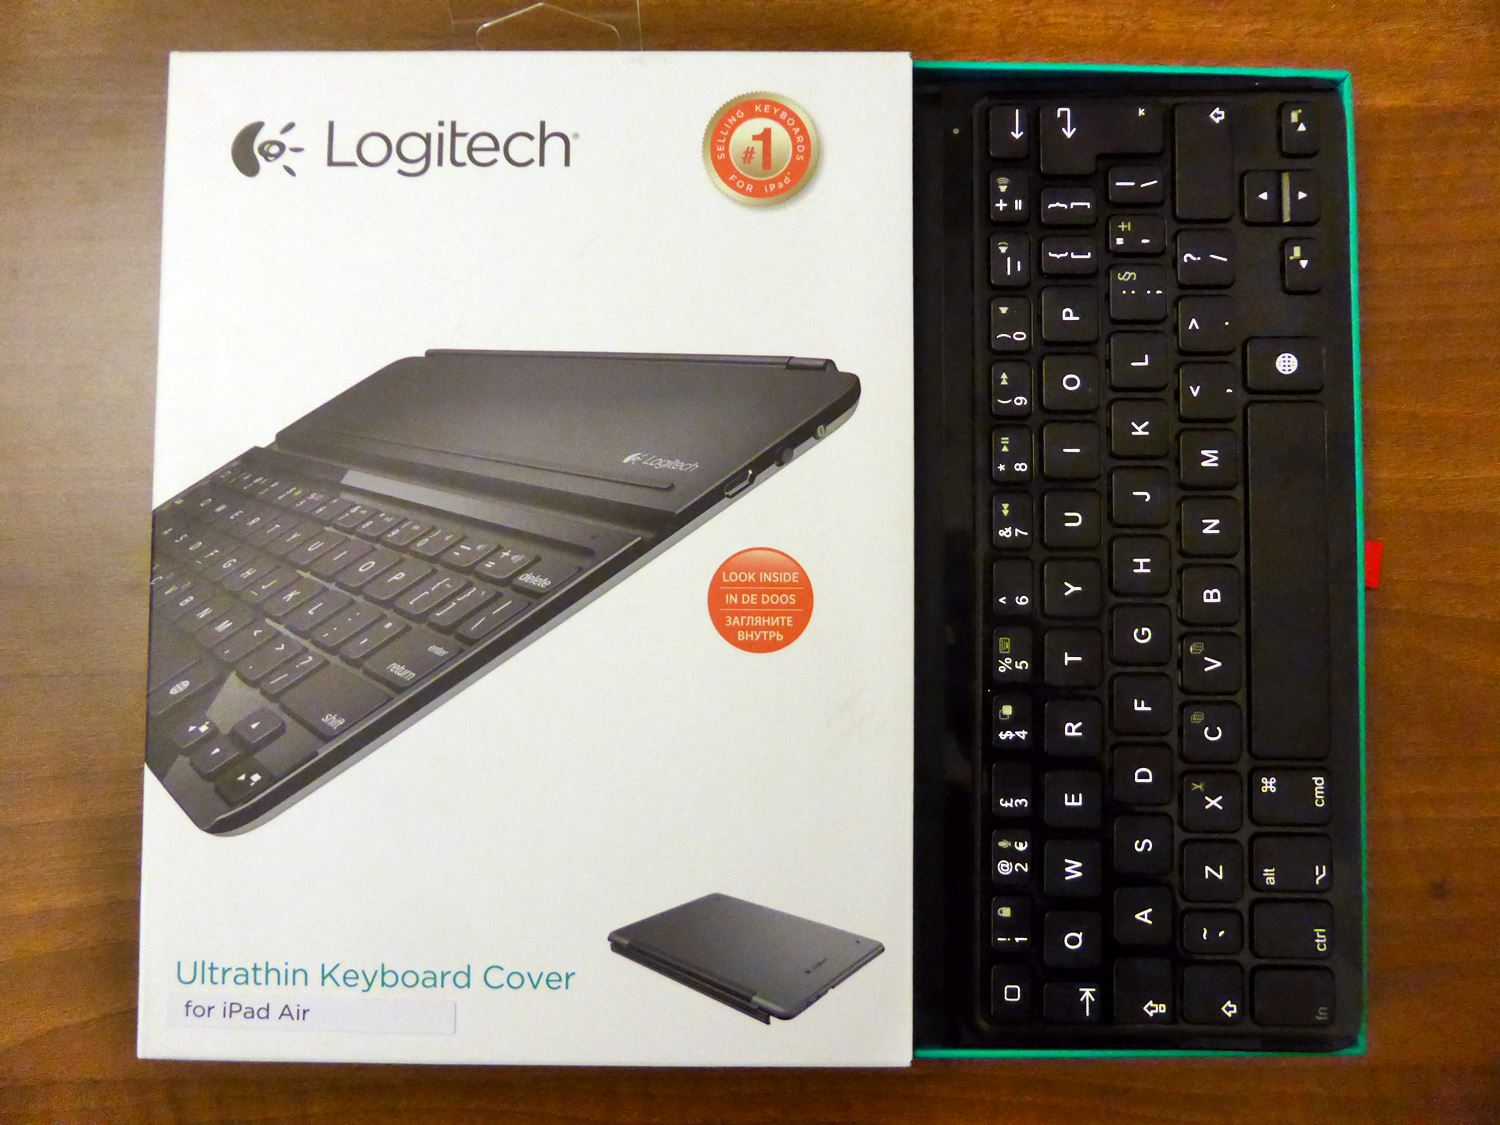 Unboxing the LOGITECH Ultrathin Keyboard Cover for iPad Air Open Box with Keyboard Still Inside